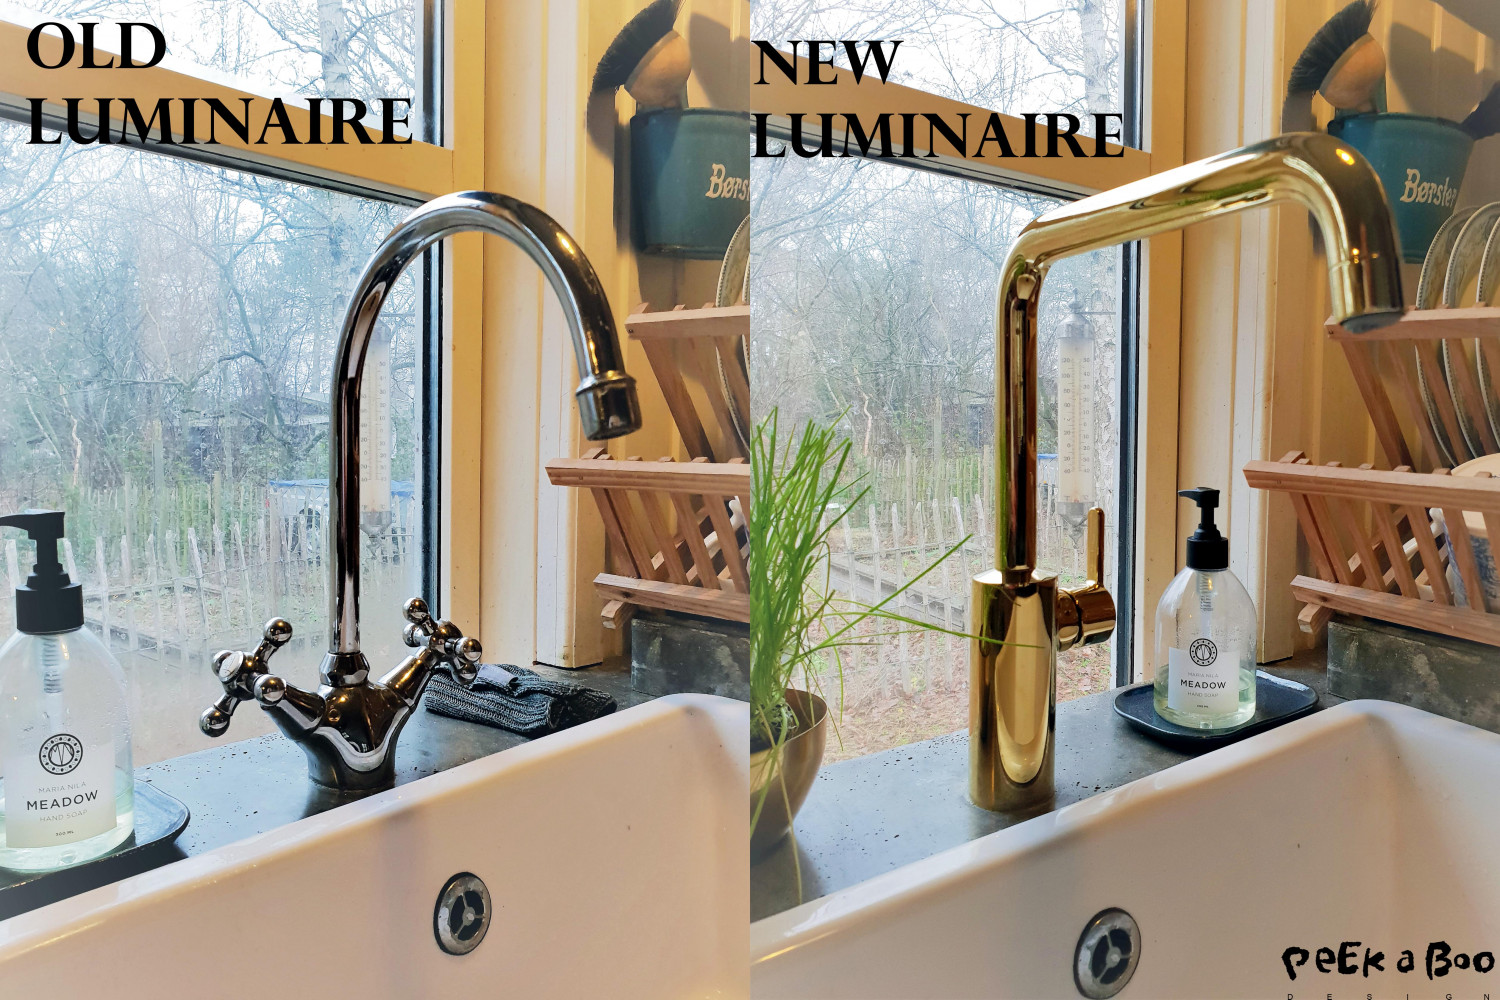 before with the old luminaire and see the big difference it does with the new brass one from Damixa.